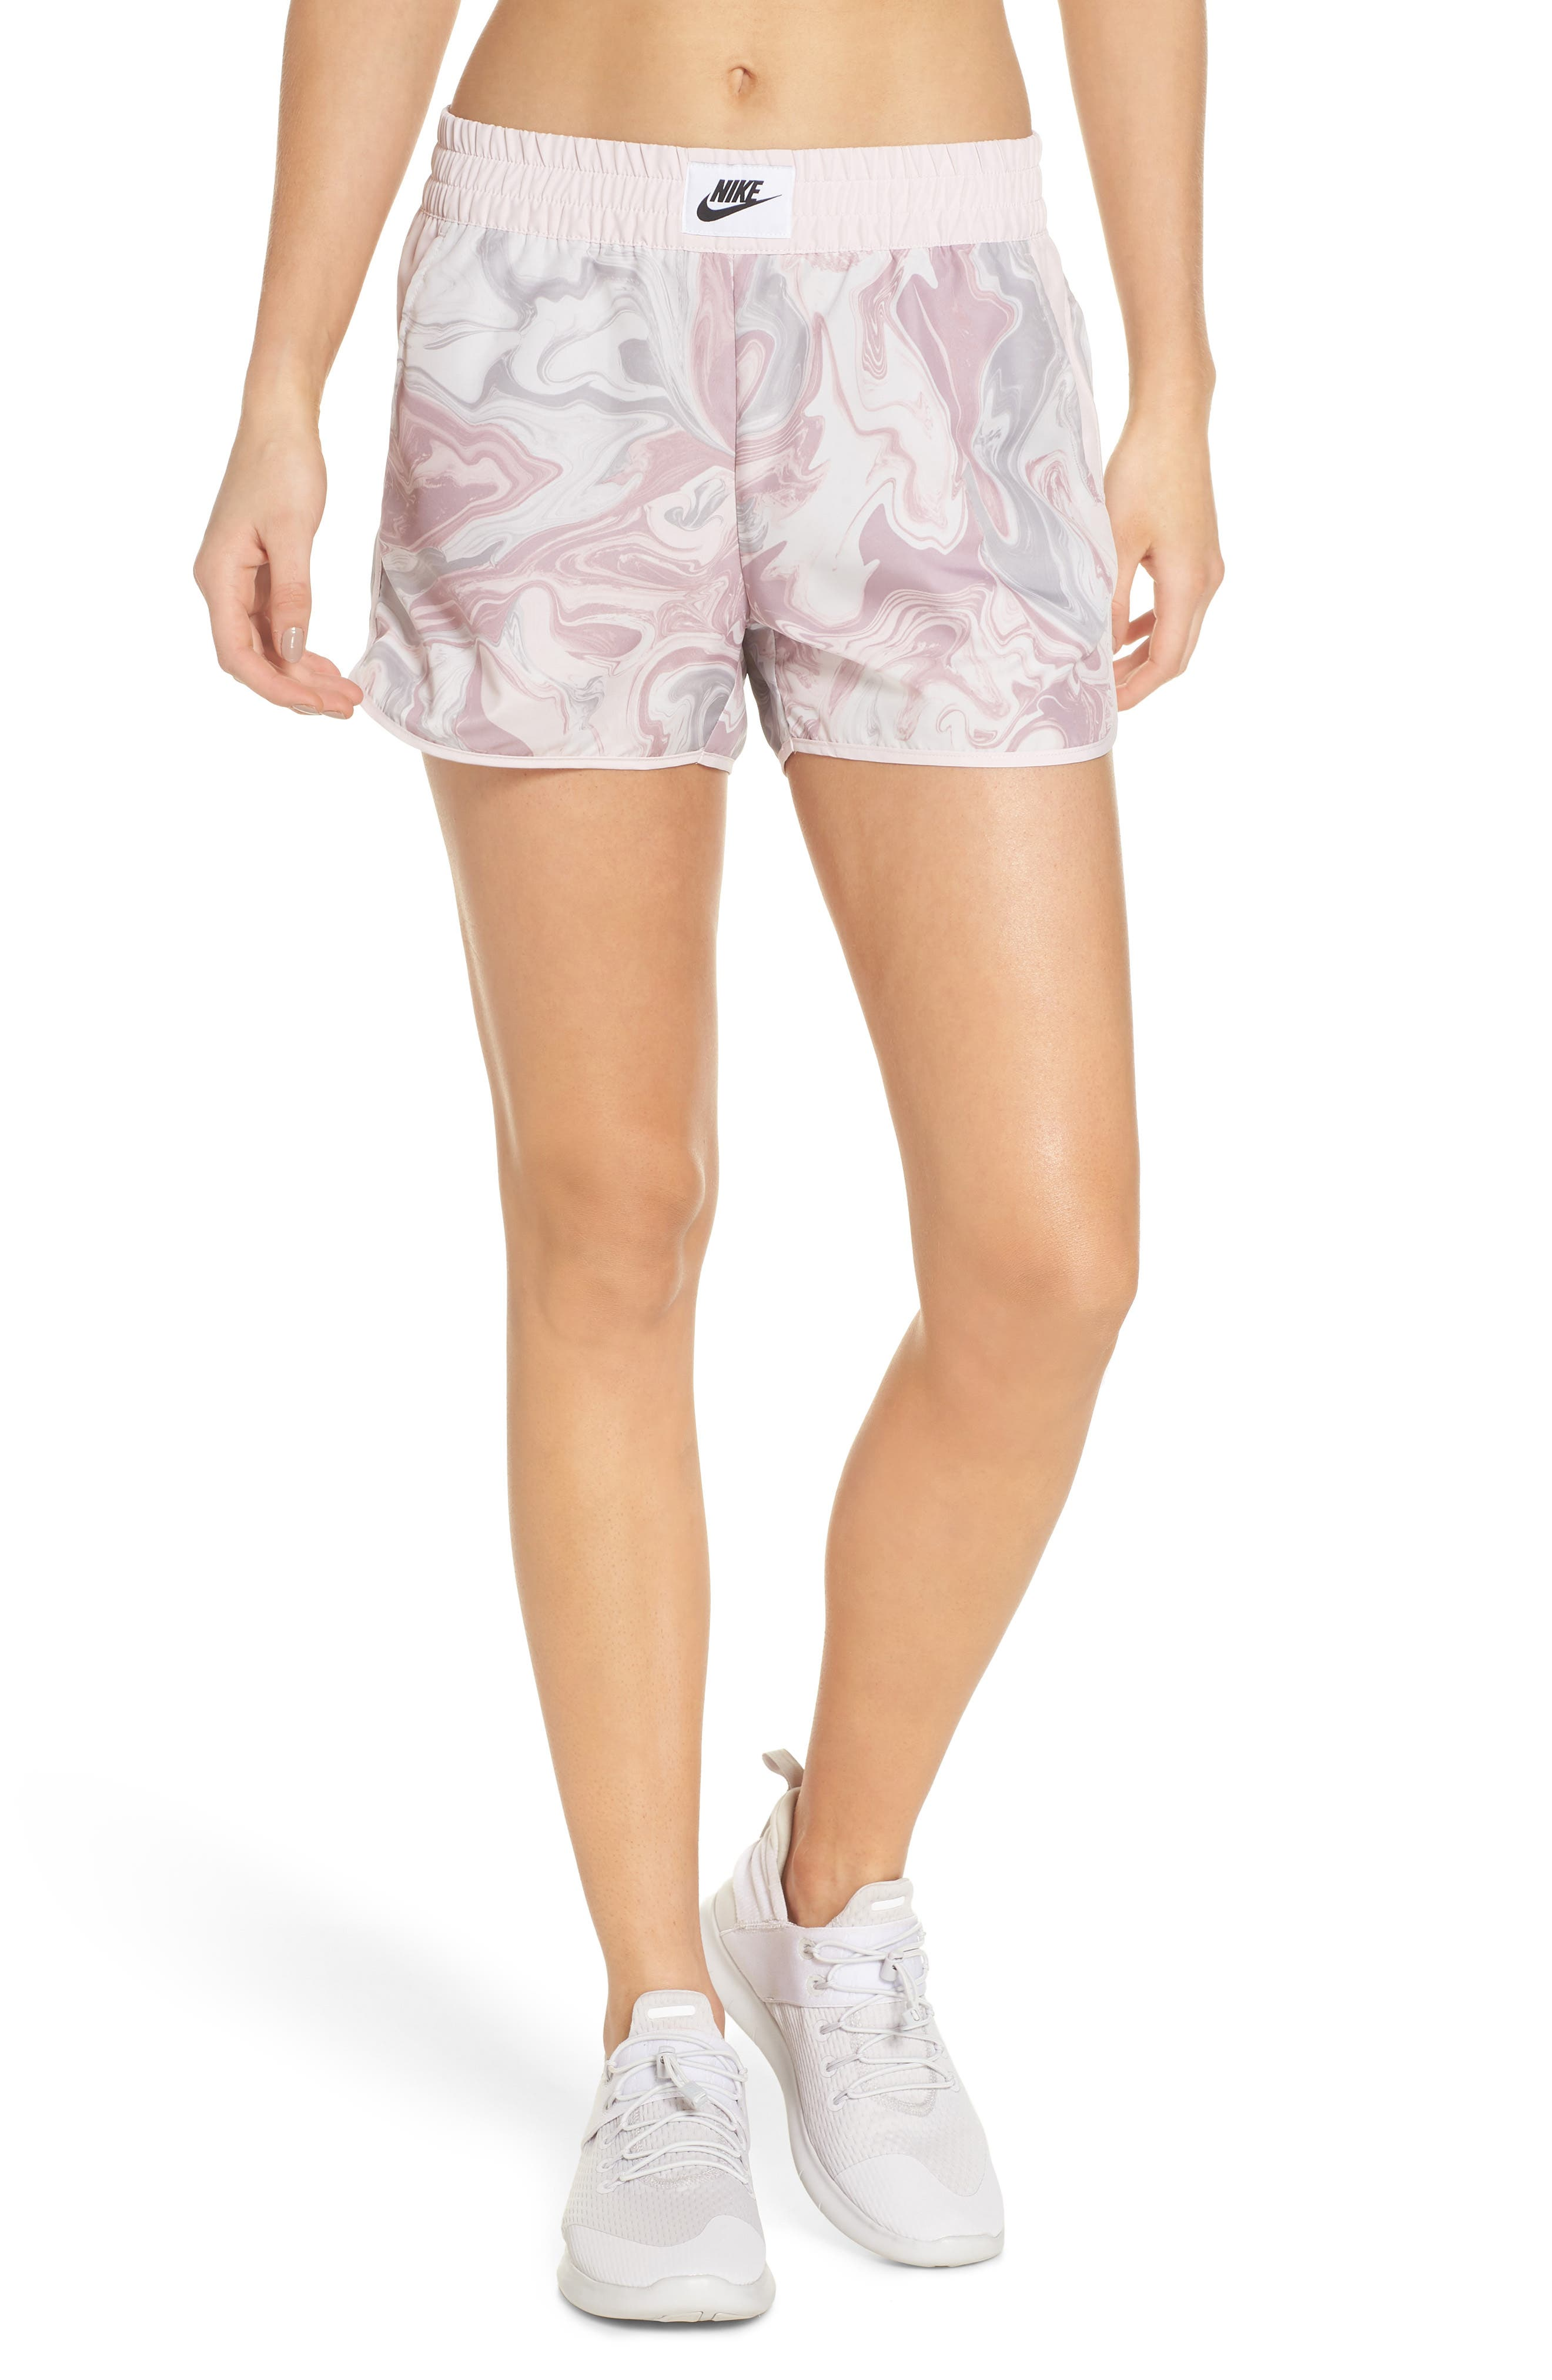 Sportswear Woven Shorts,                             Main thumbnail 1, color,                             ELEMENTAL ROSE/ BARELY ROSE